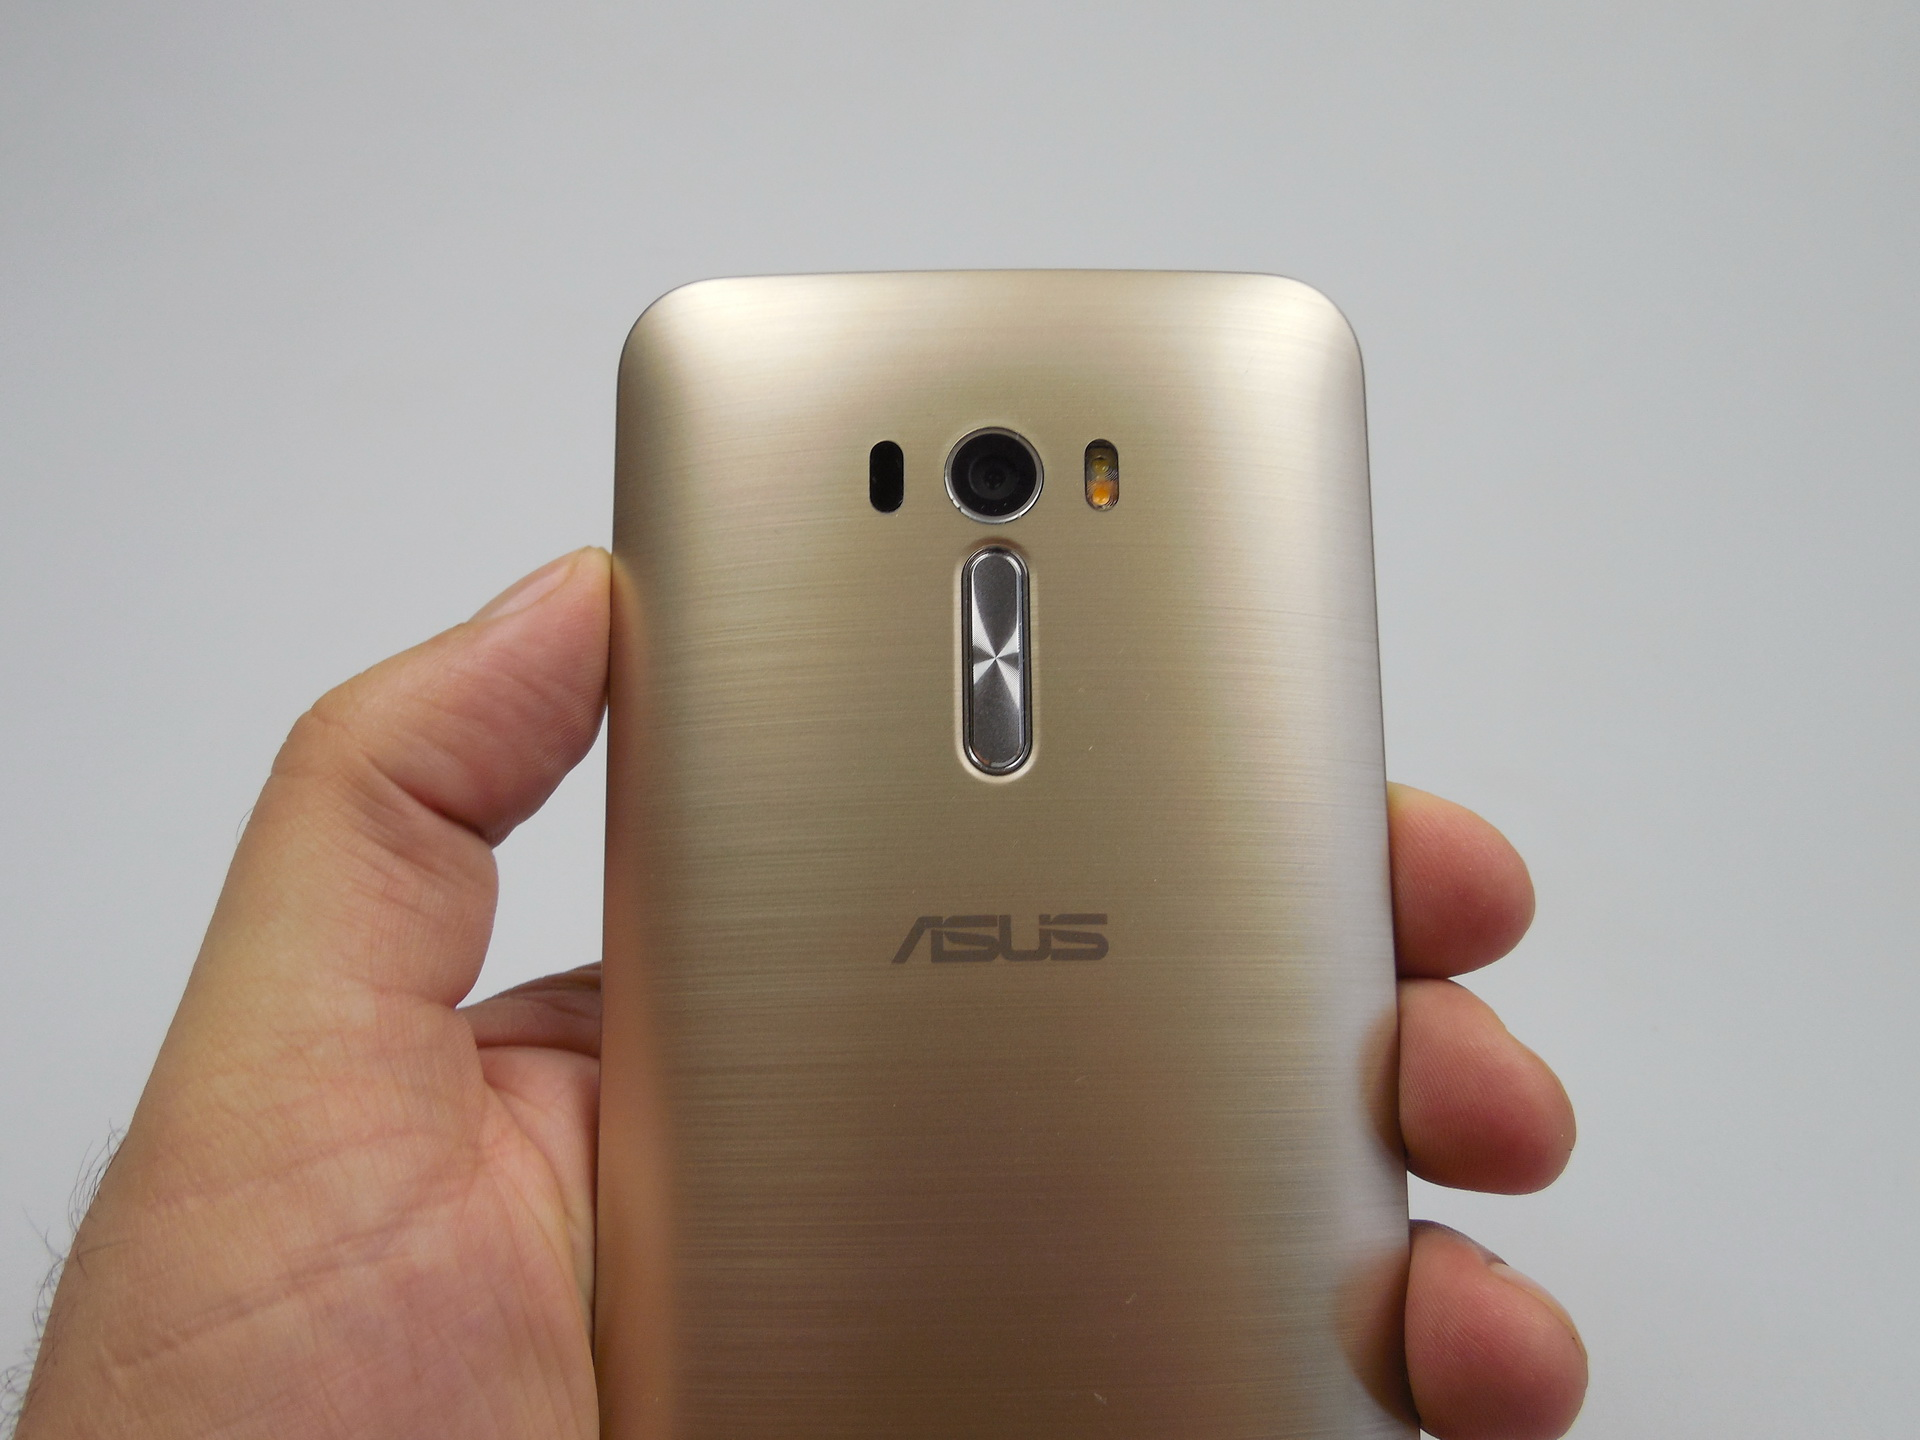 asus zenfone selfie review zd551kl best selfie phone of. Black Bedroom Furniture Sets. Home Design Ideas